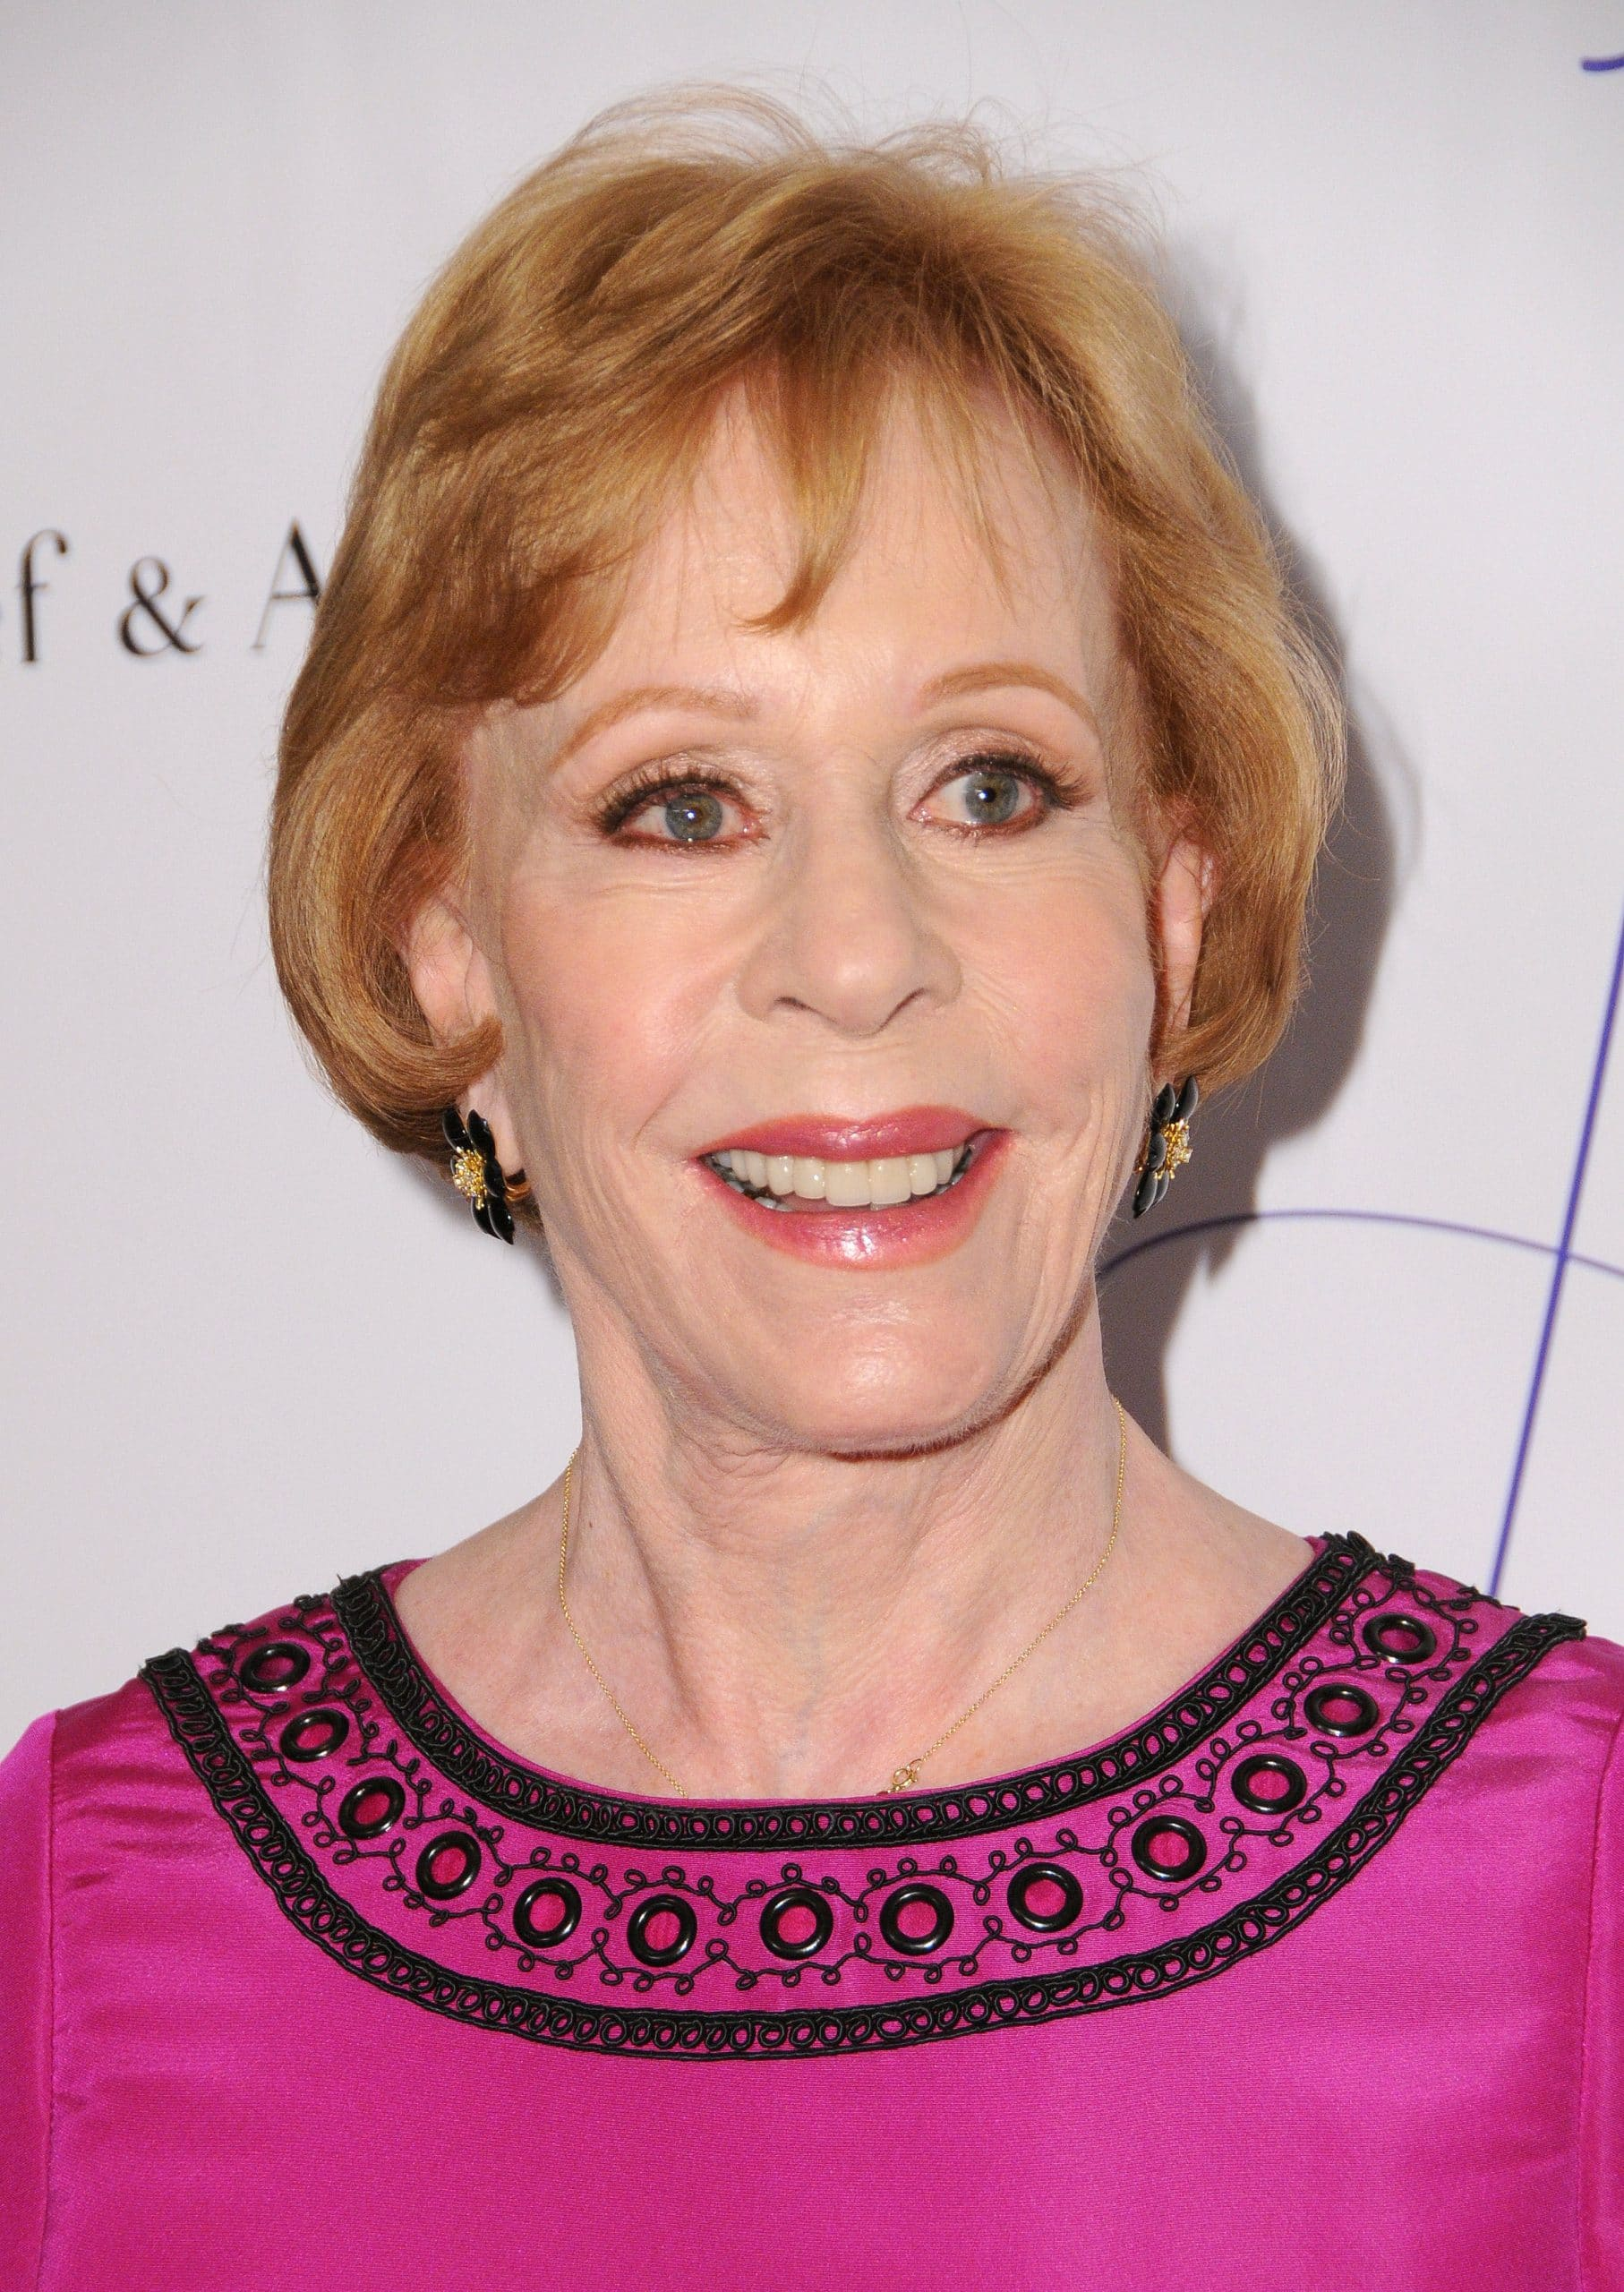 Carol Burnett Gains Temporary Guardianship Of Grandson Amid Daughter's Substance Abuse Issues